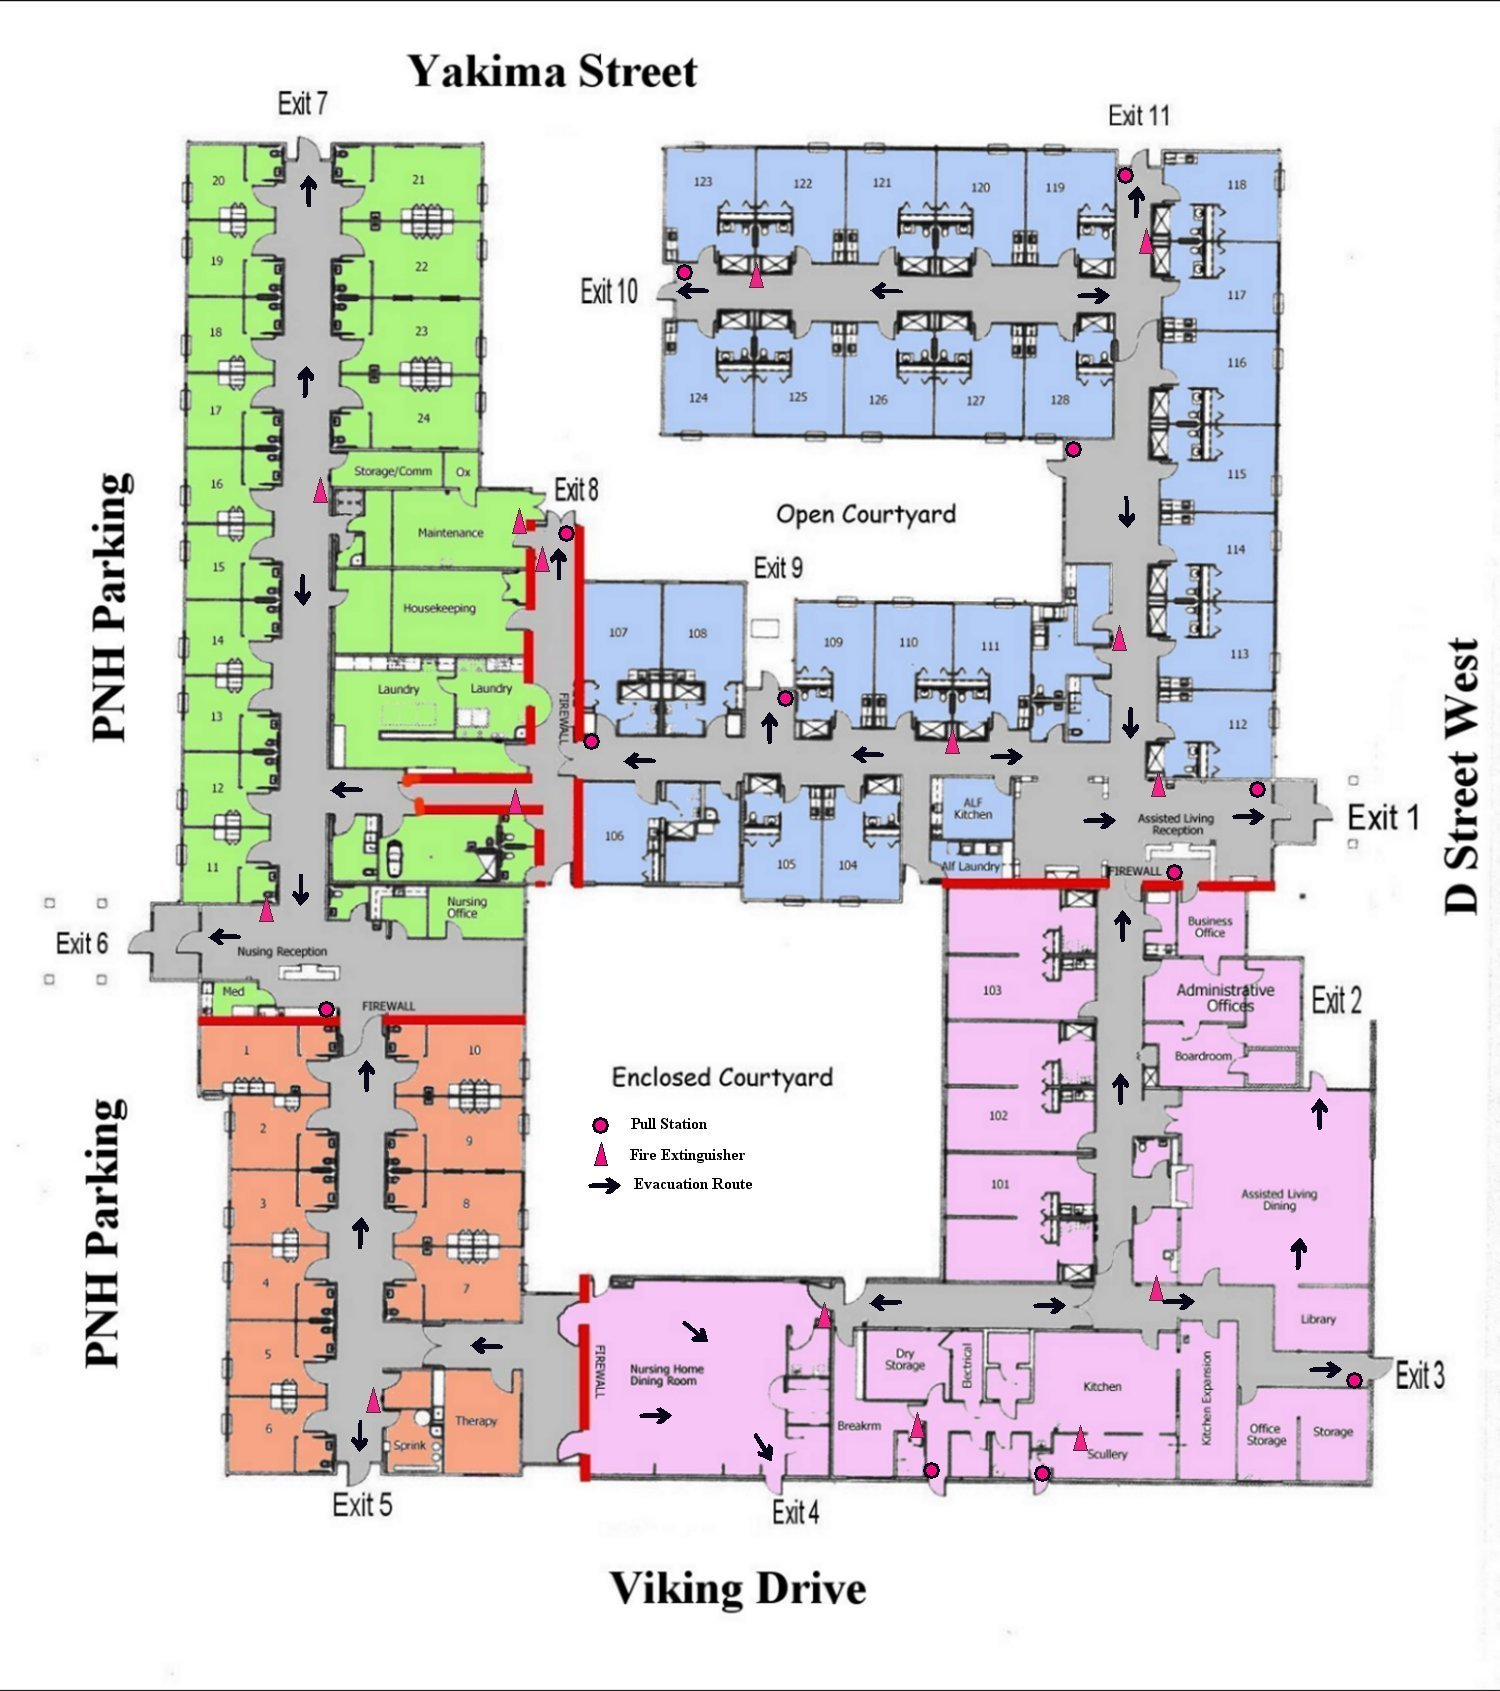 Nursing Home Bathroom Design Gallery as well Nursing Home Floor Plan Dimensions together with Nursing Facility Floor Plan as well Hotel Room Layout additionally Medical Facility Floor Plan. on nursing home facility floor plan